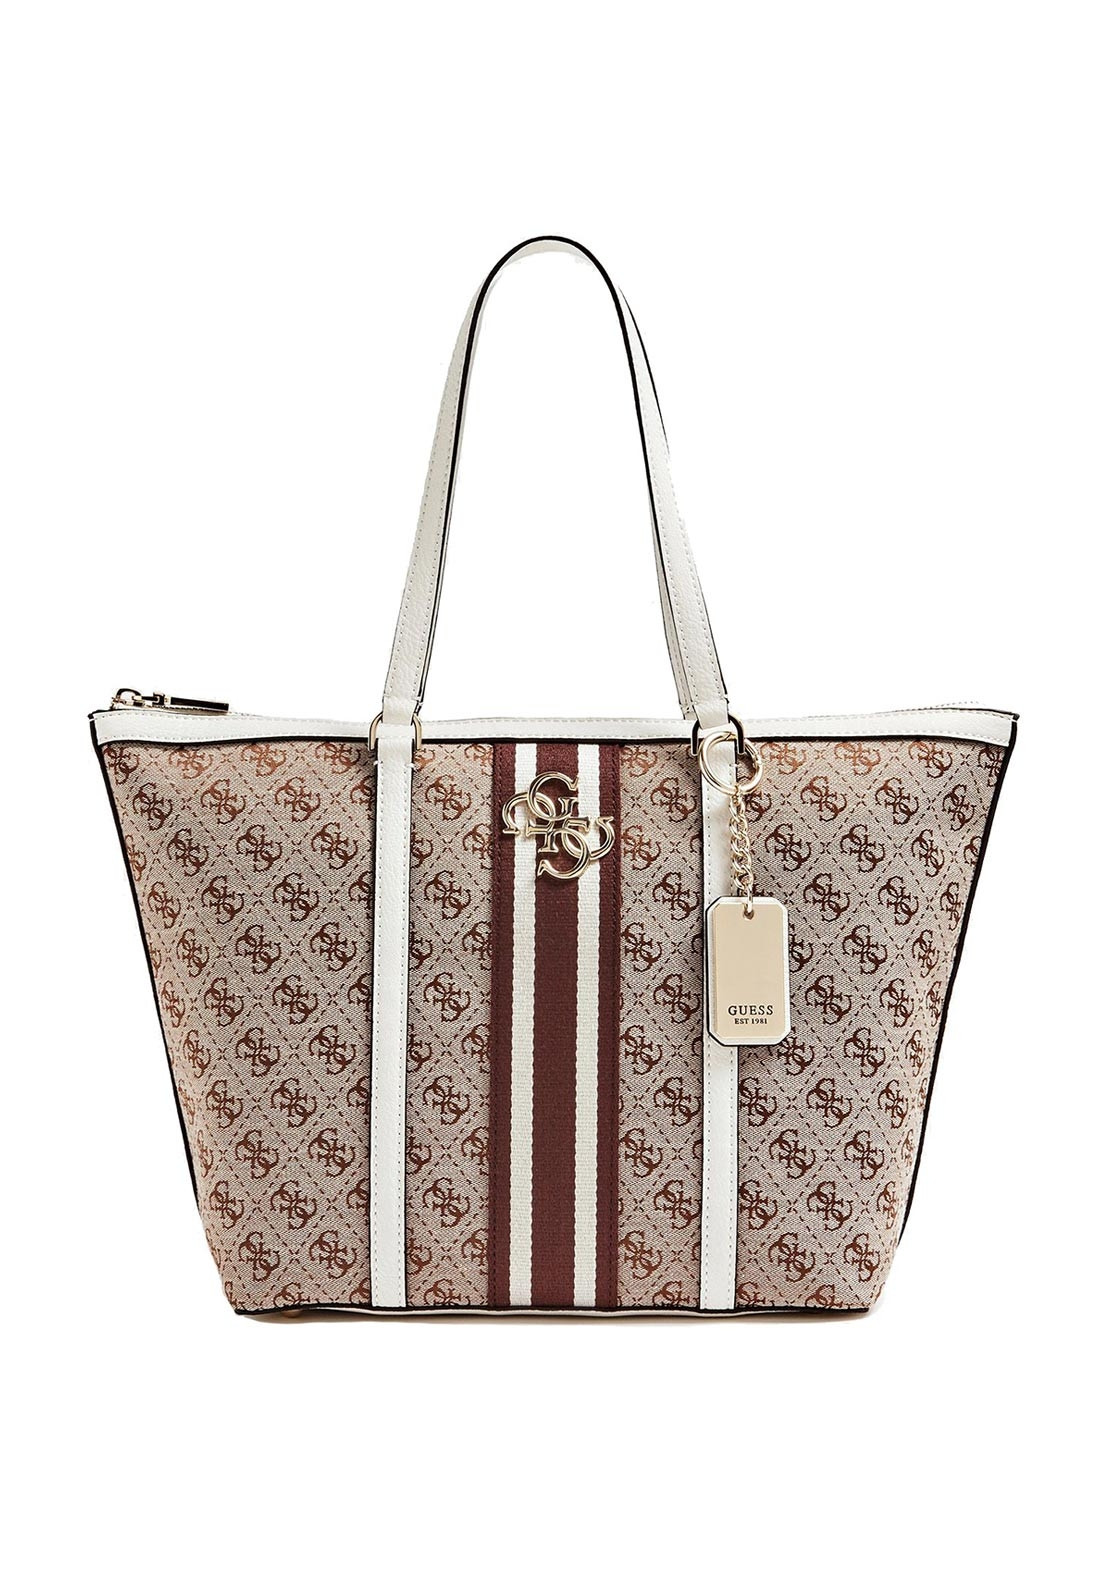 aed5788a511 Guess Vintage Tote Bag, White